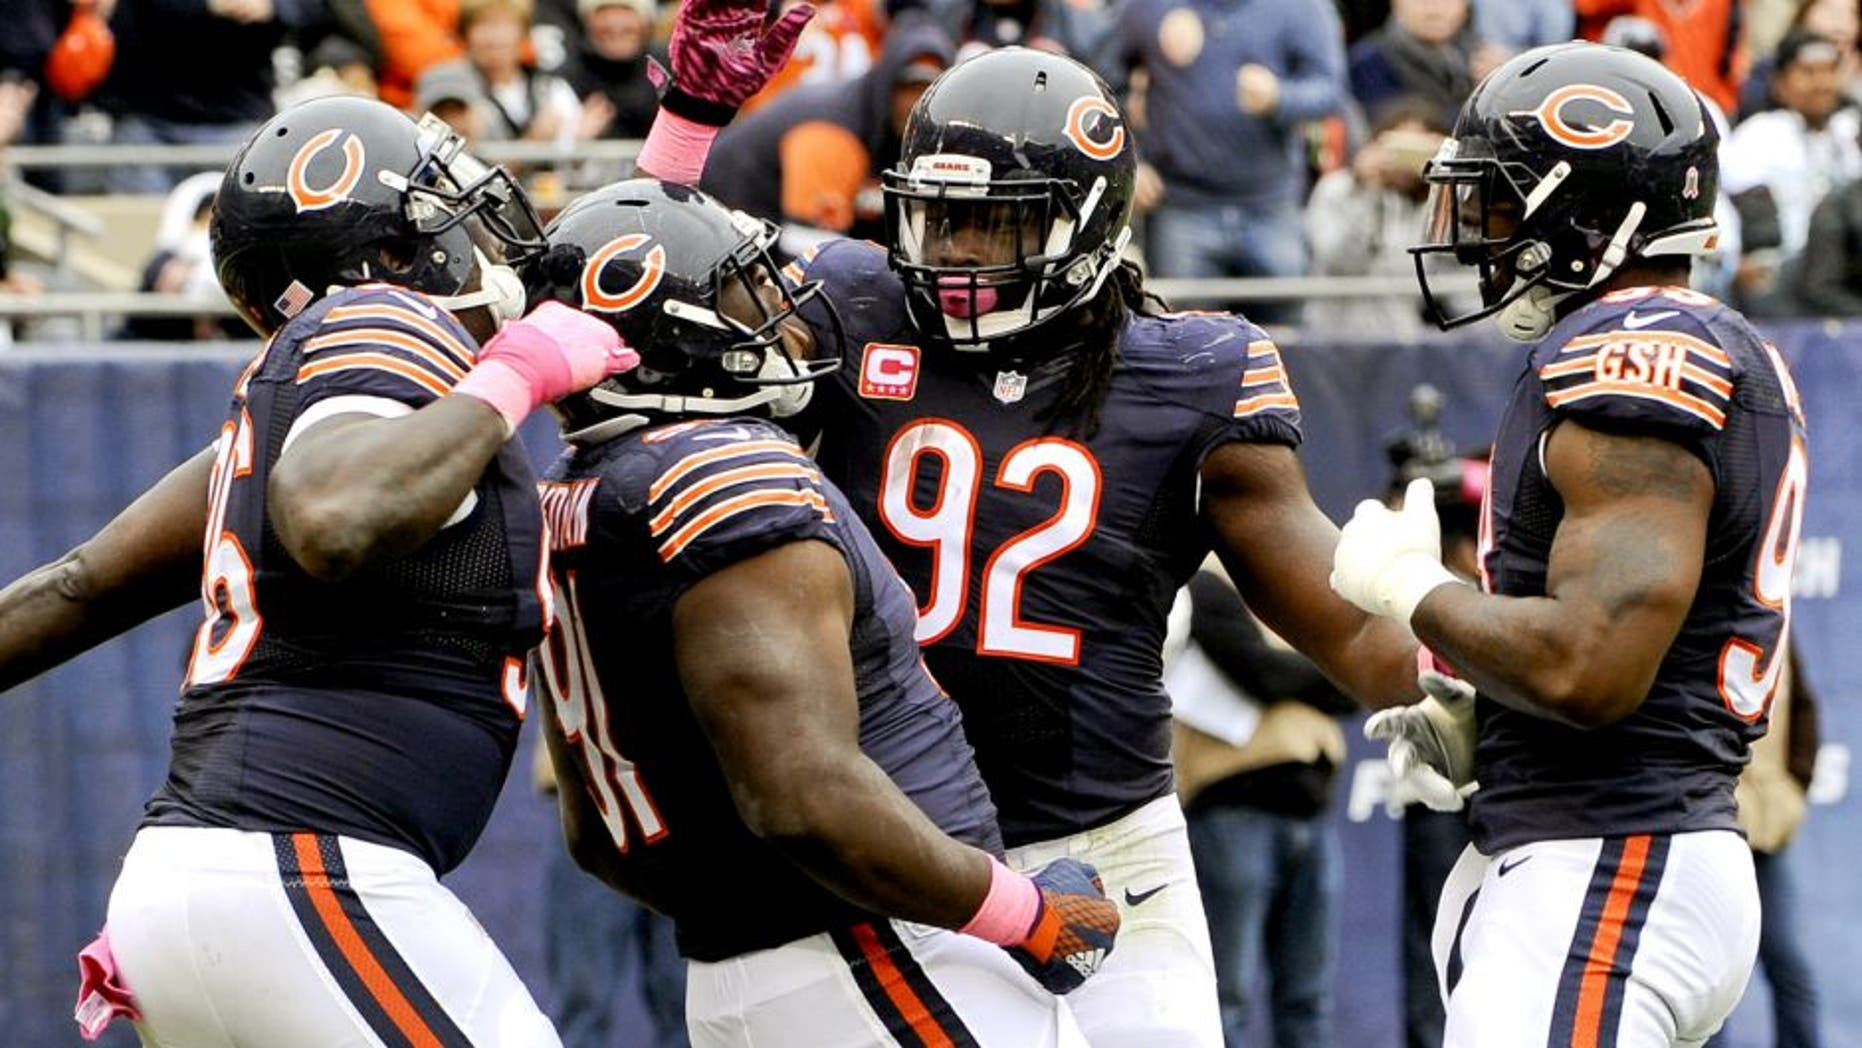 Oct 4, 2015; Chicago, IL, USA; Chicago Bears nose tackle Eddie Goldman (91) celebrates with Chicago Bears defensive end Jarvis Jenkins (96), Chicago Bears outside linebacker Pernell McPhee (92) and Chicago Bears linebacker Lamarr Houston (99) after he sacked Oakland Raiders quarterback Derek Carr (4) in the first half at Soldier Field. Mandatory Credit: Matt Marton-USA TODAY Sports